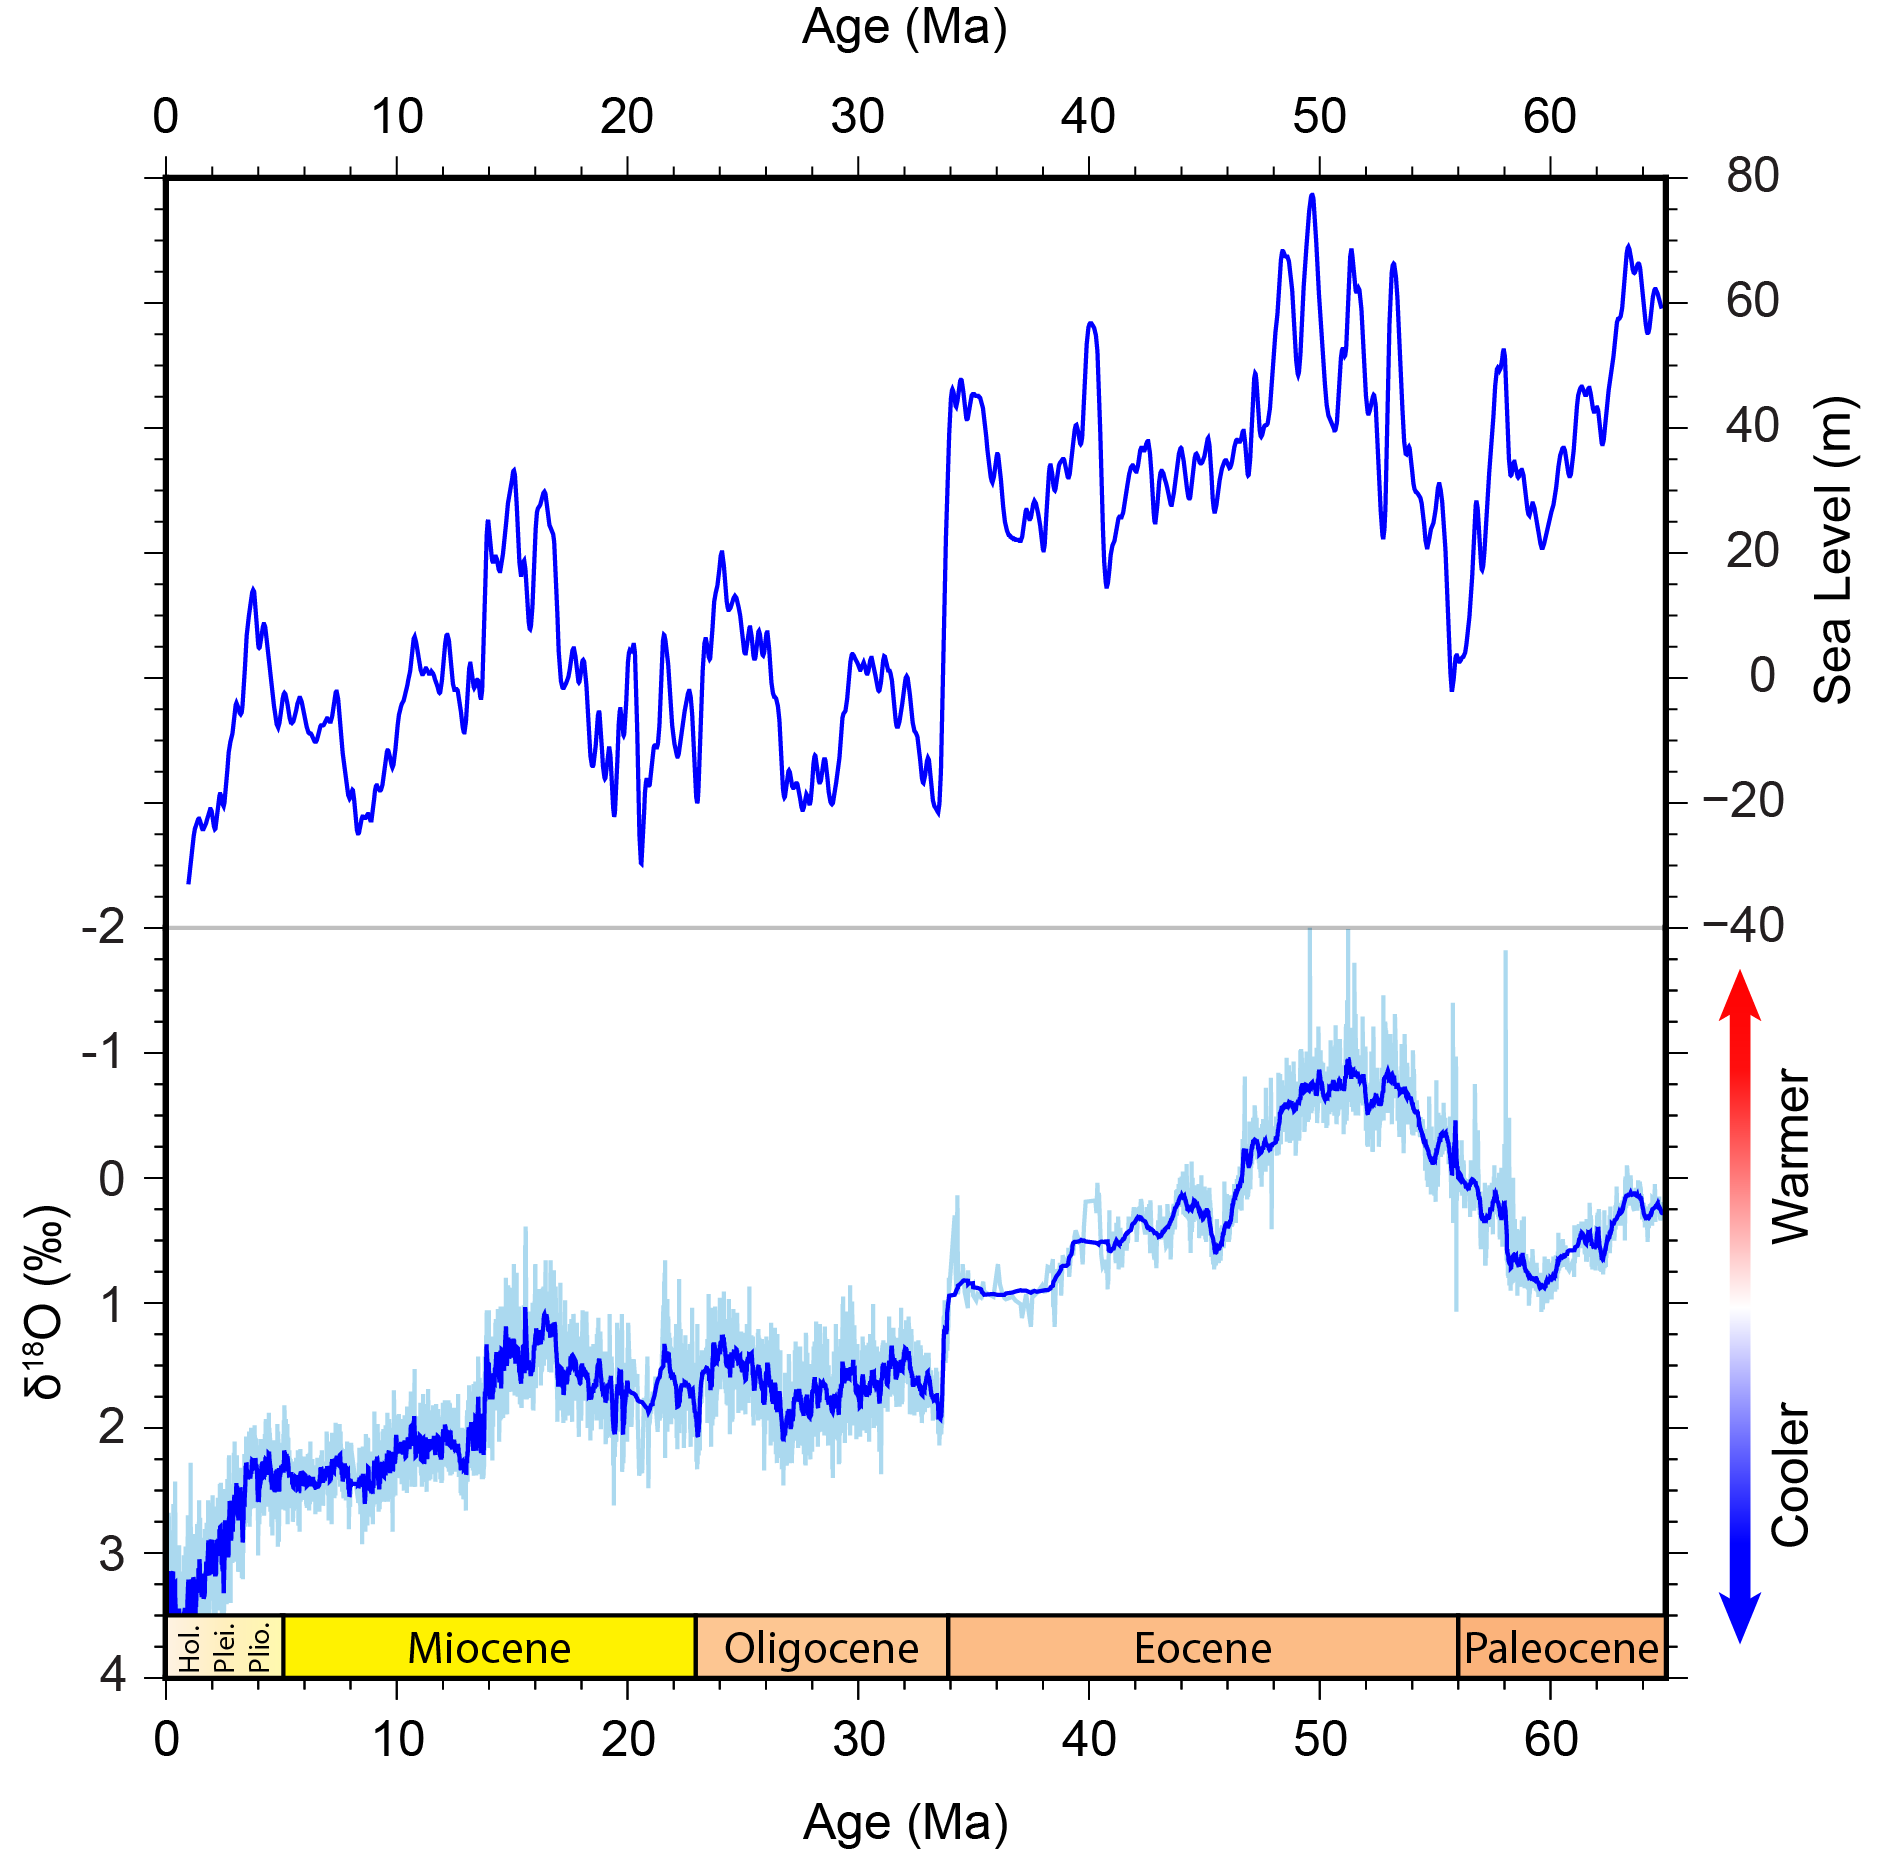 Oxygen-18 and sea level records for the past 65 million years show a general cooling trend with distinct climate events.